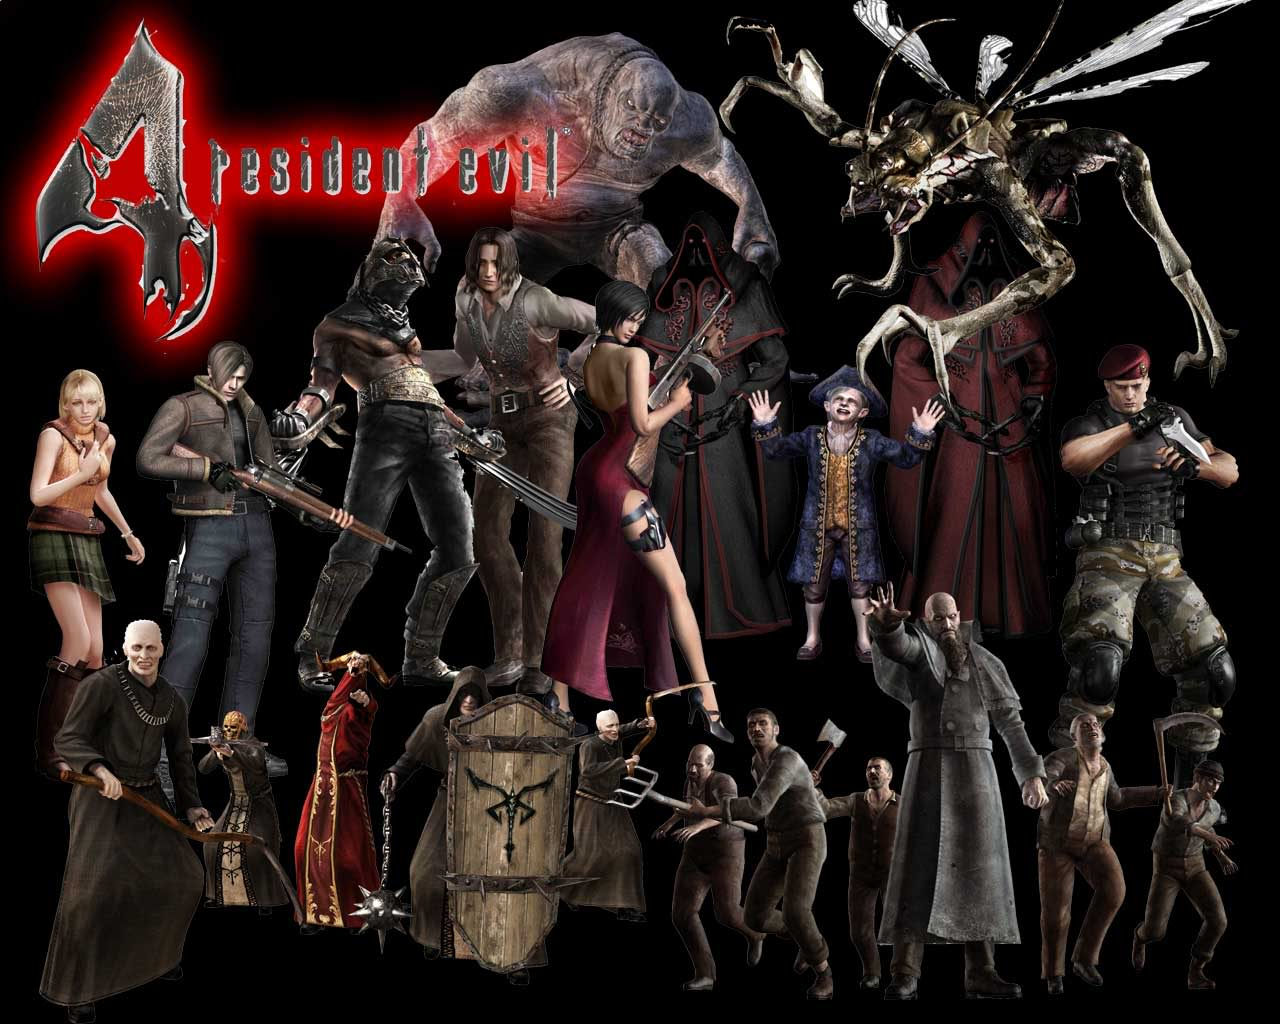 resident evil 4 descargalo yaa ea Residentevil4wallpaper